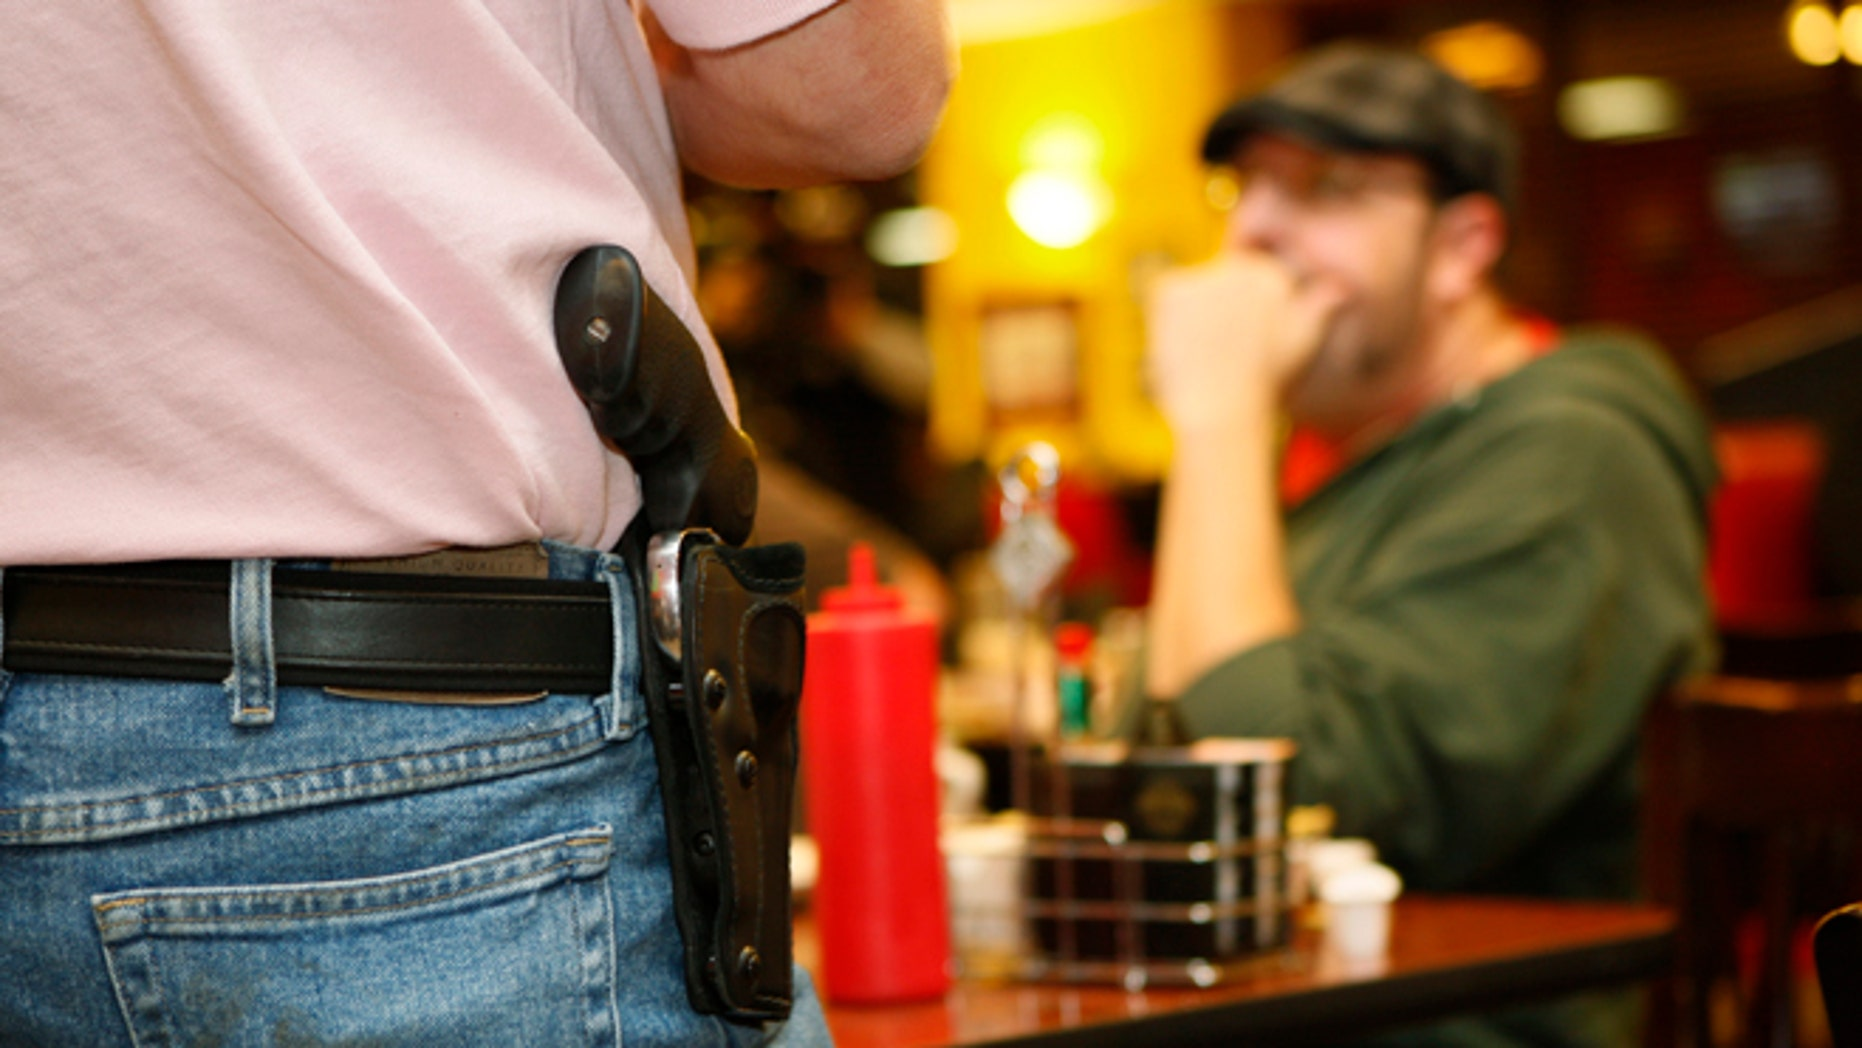 FILE: Nov. 1, 2012: A Oklahoma resident wears an unconcealed side arm at Beverly's Pancake House in Oklahoma City, Okla., a state that passed a concealed-carry law last year.